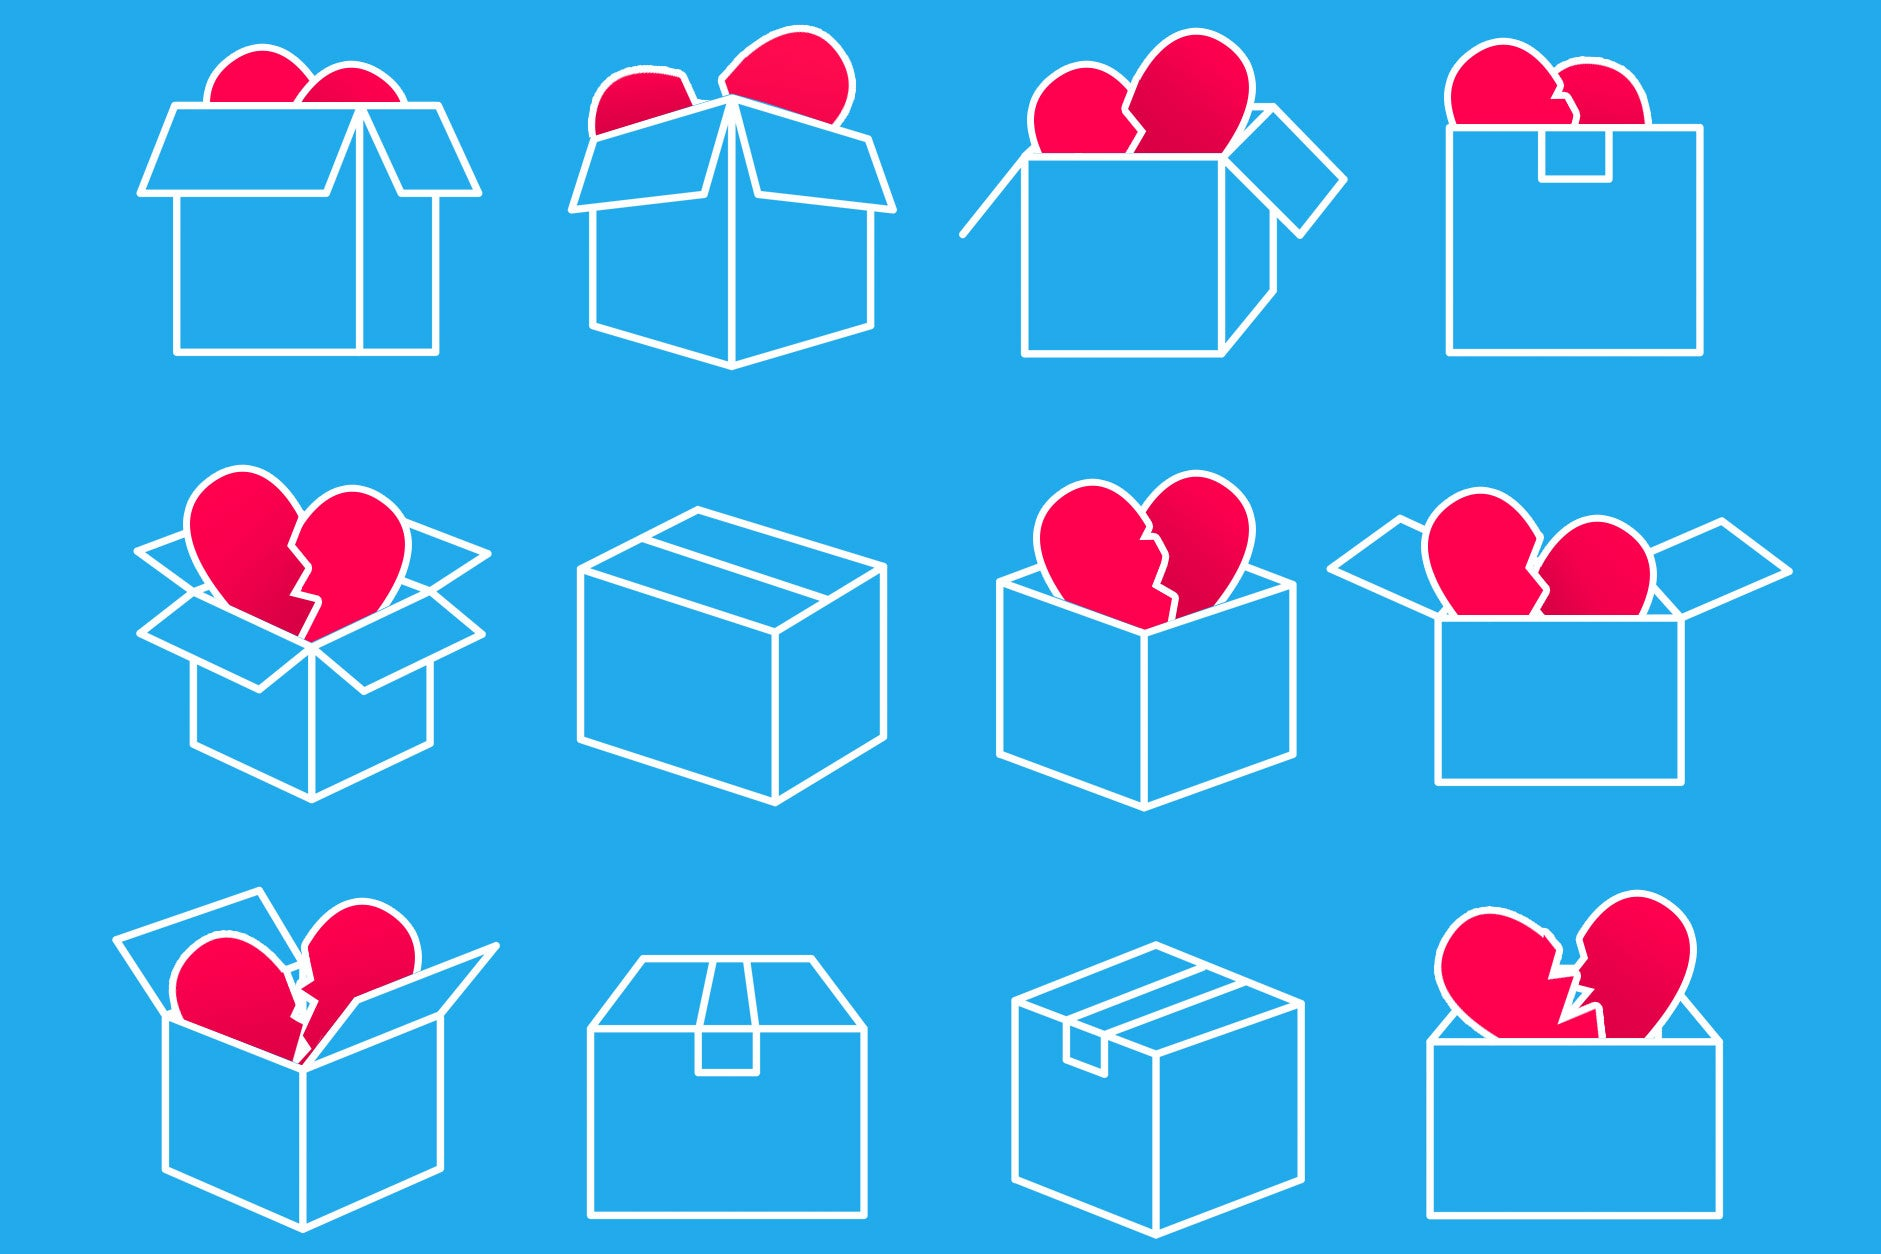 Photo illustrations of various moving boxes filled with broken hearts.